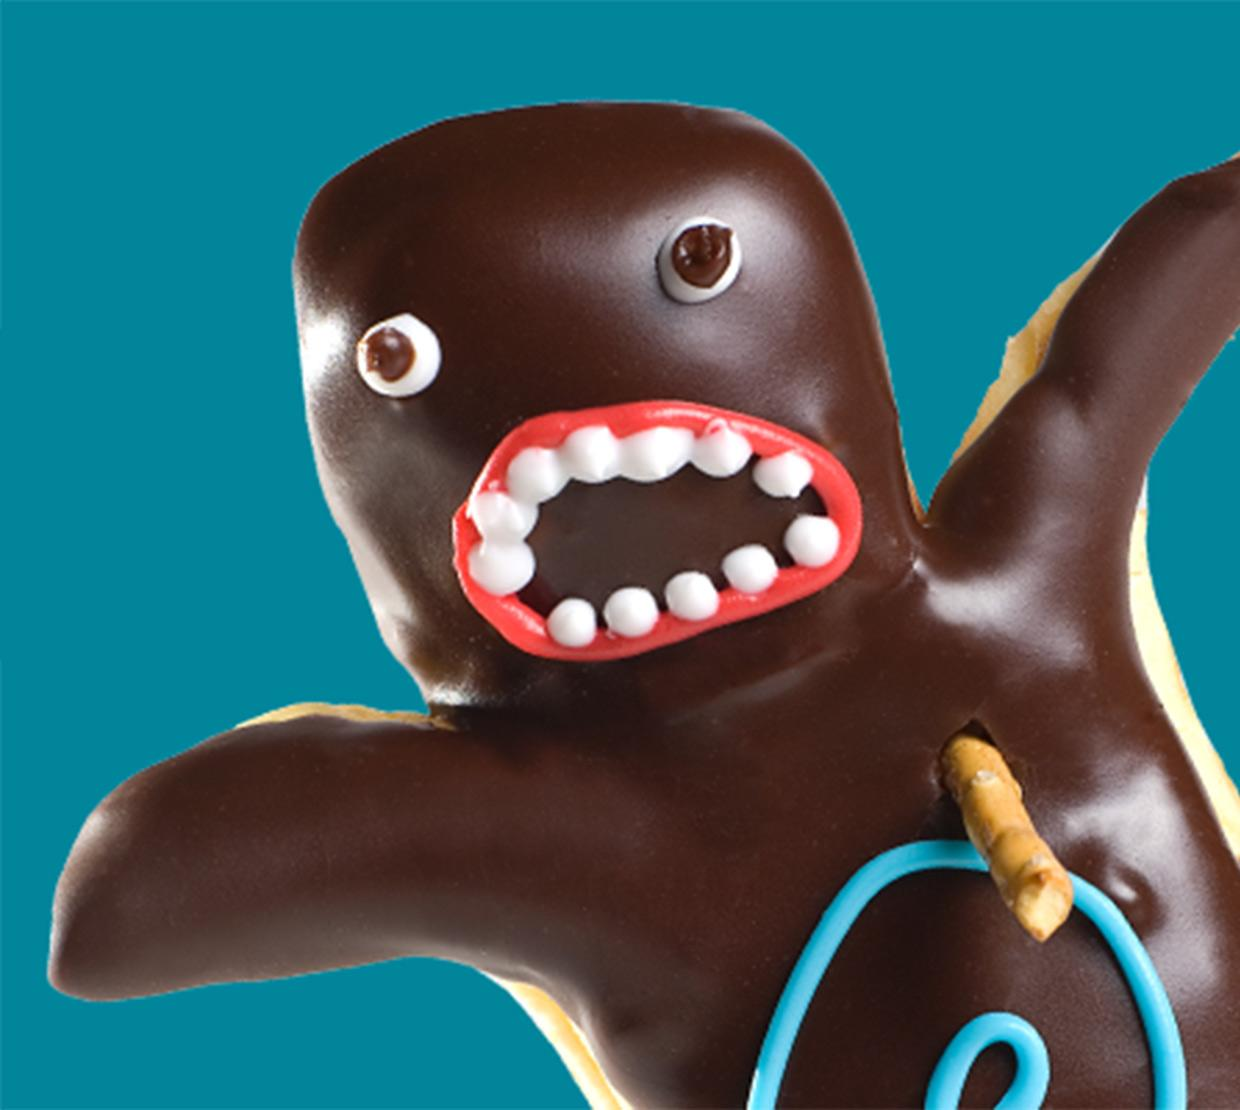 Voodoo doughnut shaped like human